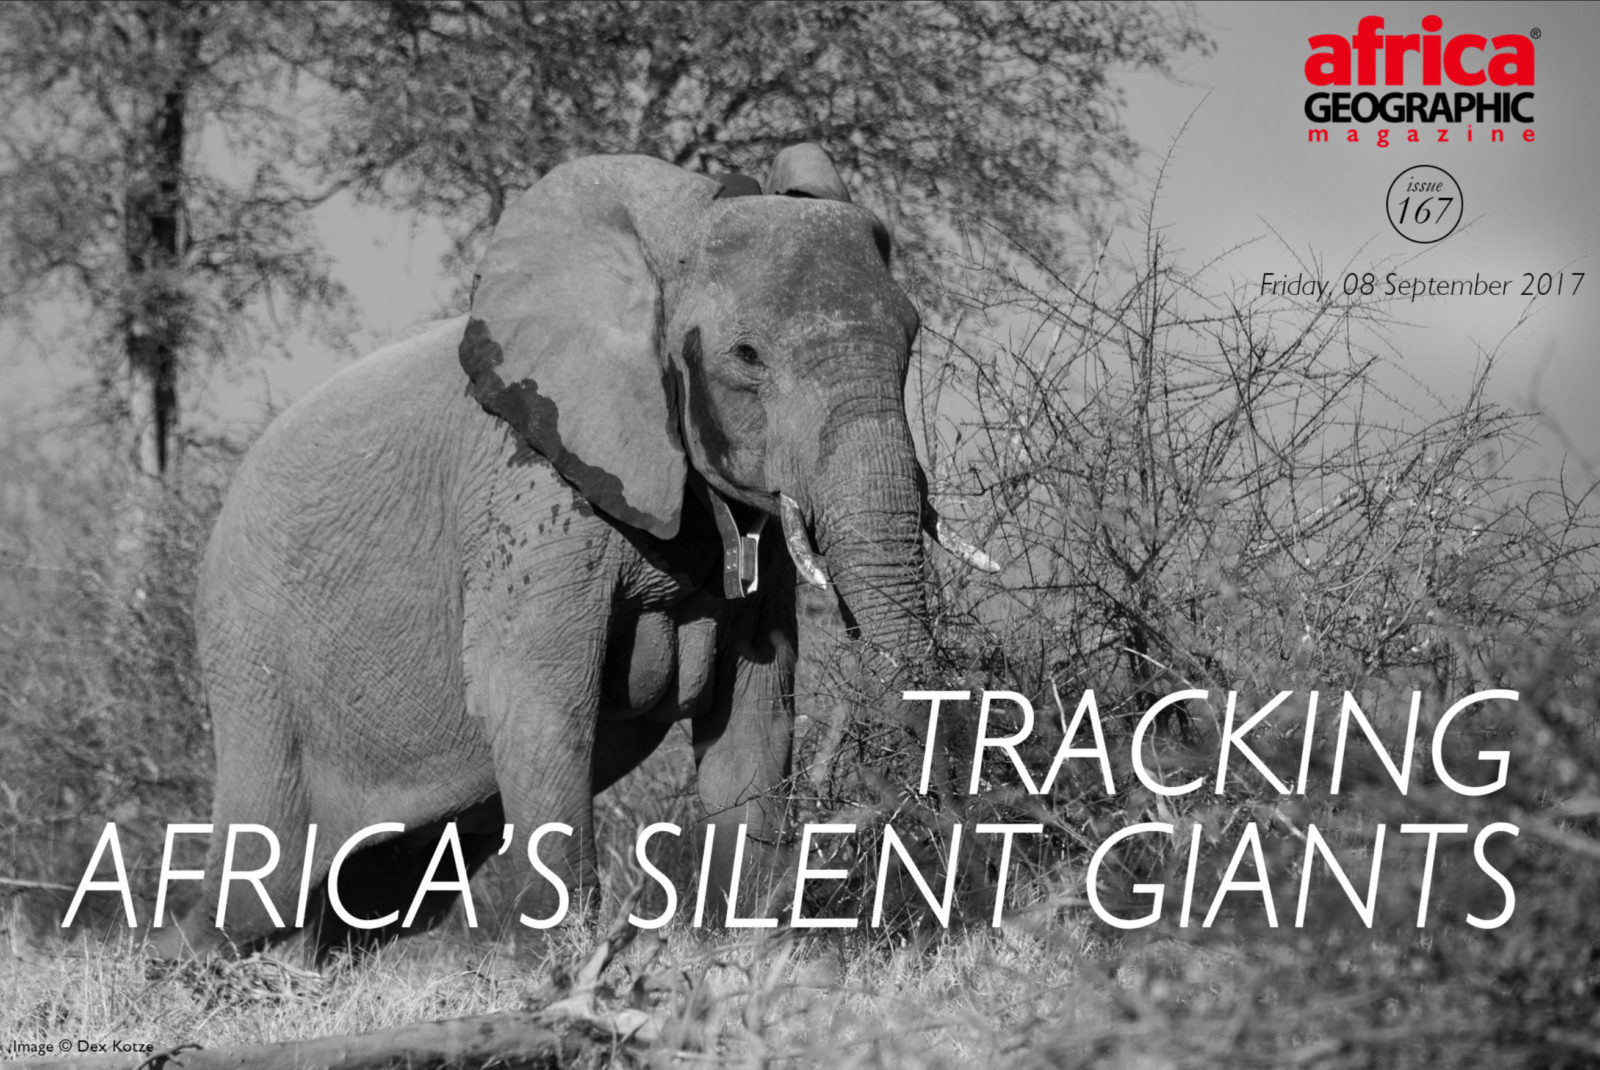 Tracking Africa's Silent Giants by Mardan Afrasiabi as pubished in Africa Geographic Magazine, photos by Dex Kotze